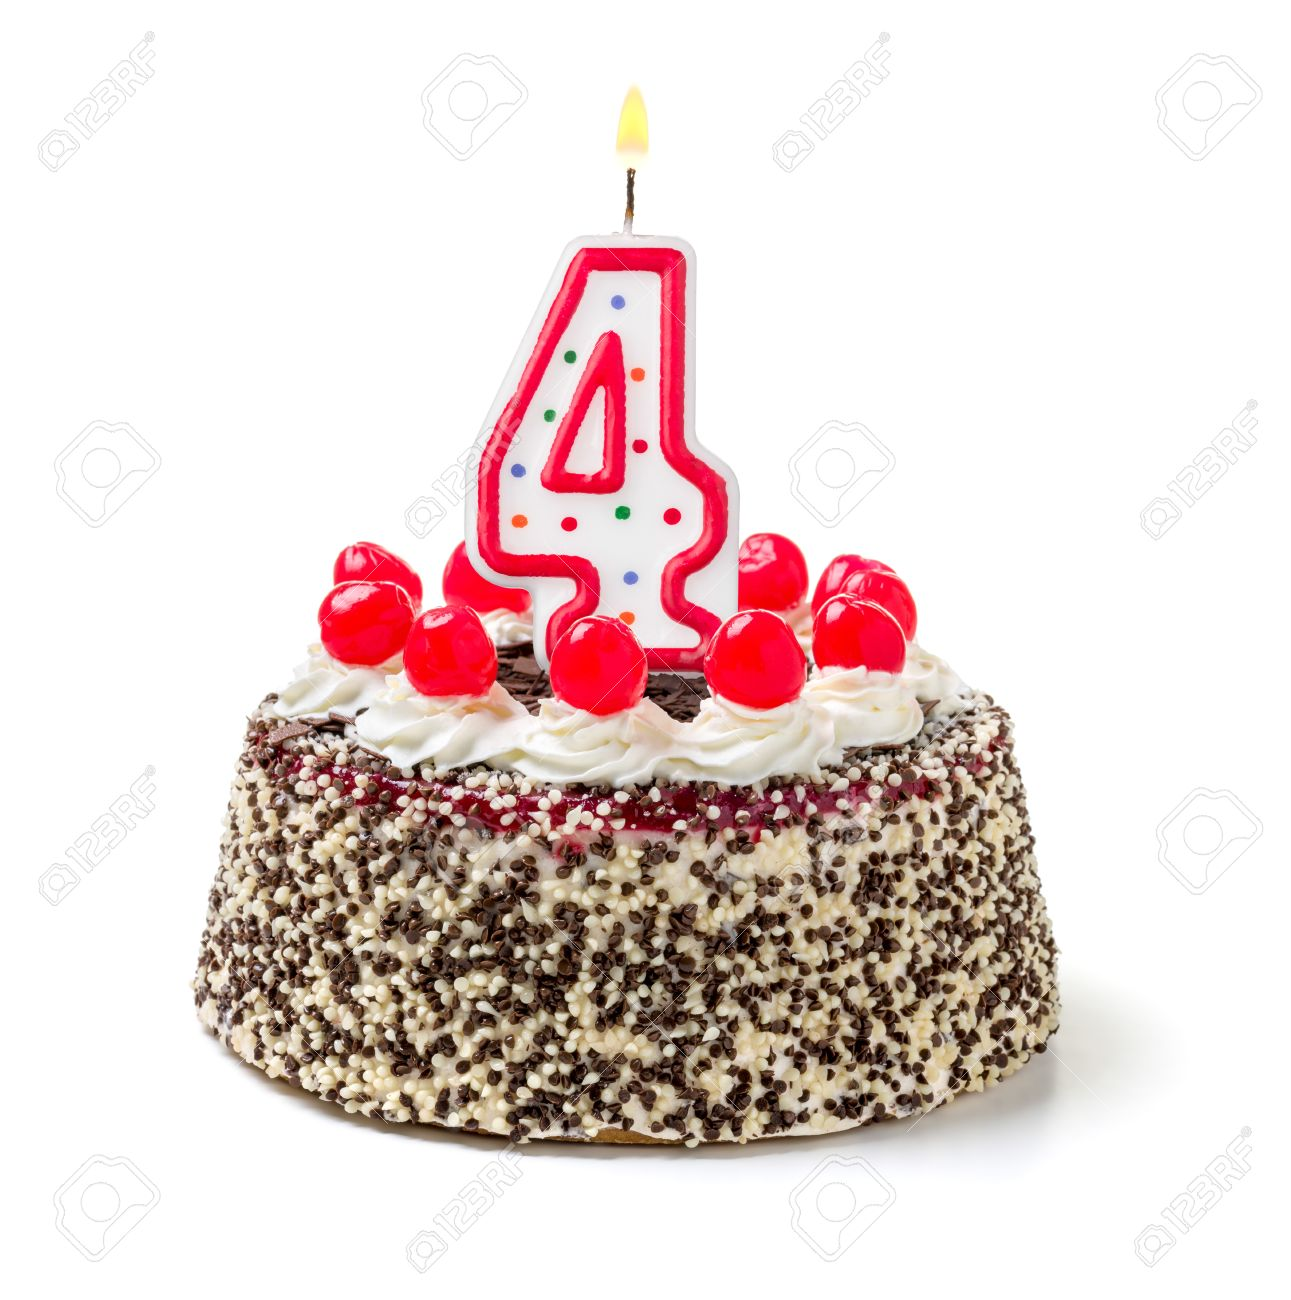 Birthday Cake With Burning Candle Number 4 Stock Photo